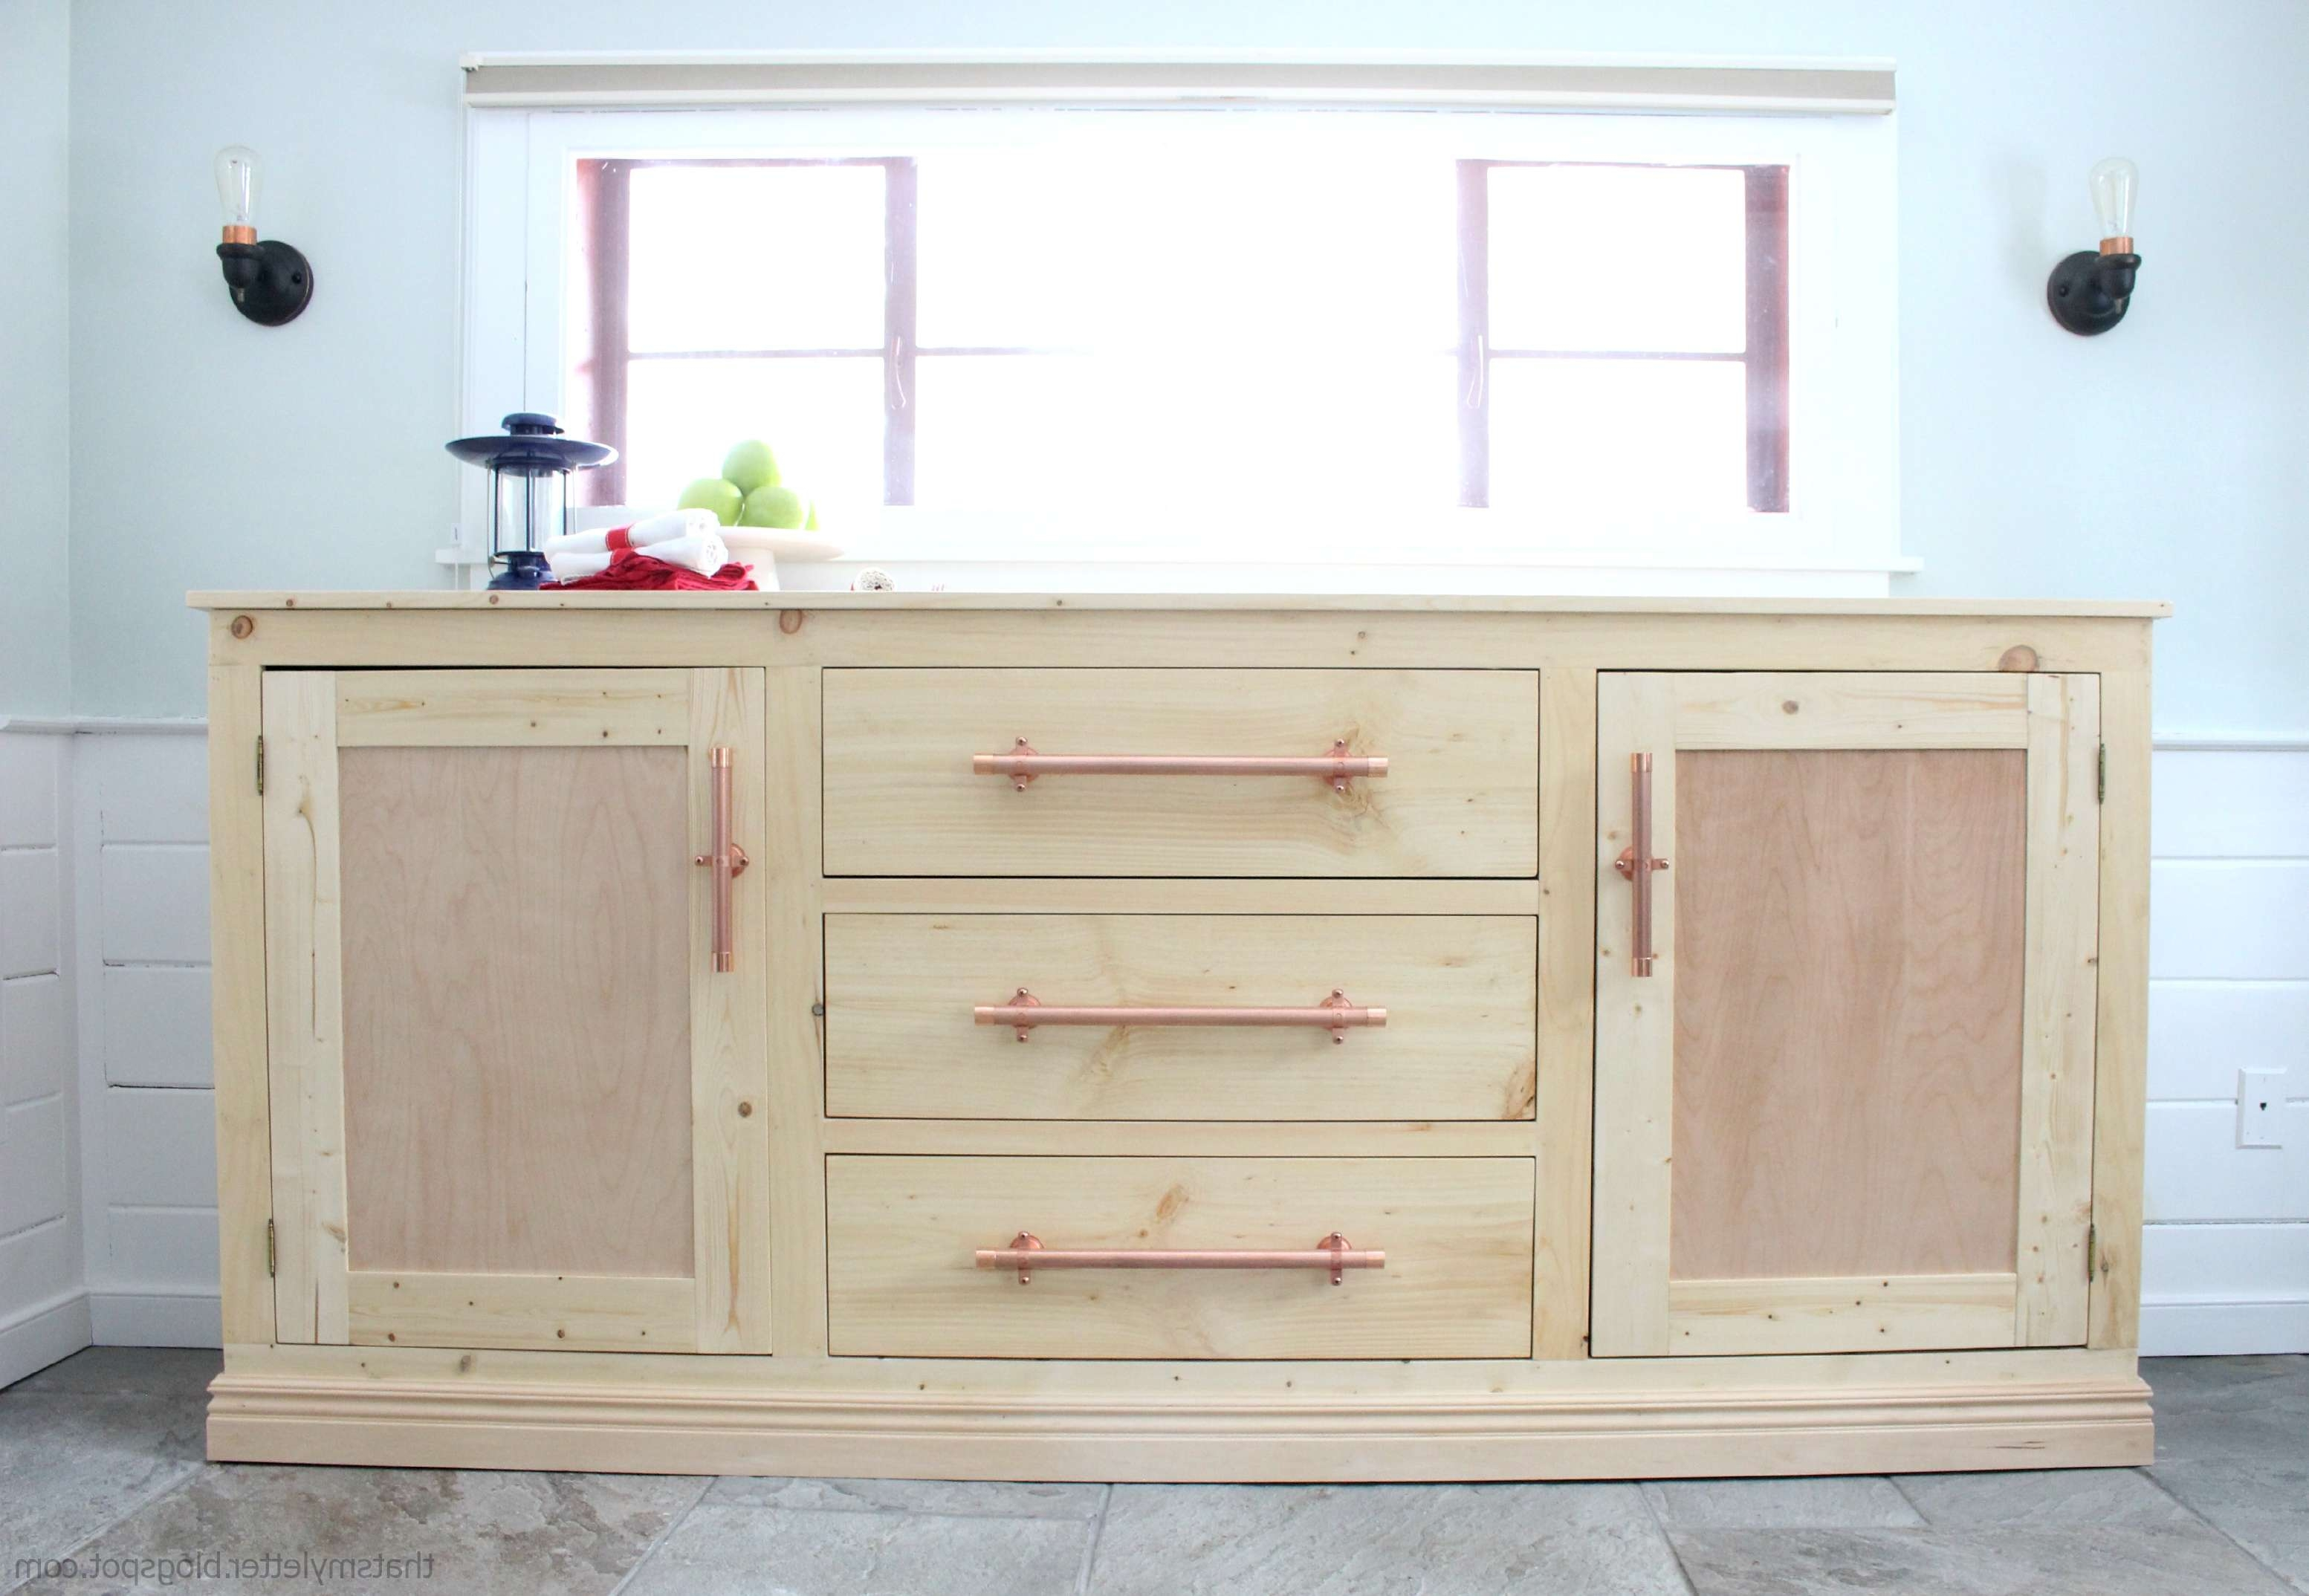 Ana White | Extra Long Buffet Cabinet – Diy Projects Inside Slim White Sideboards (View 10 of 20)